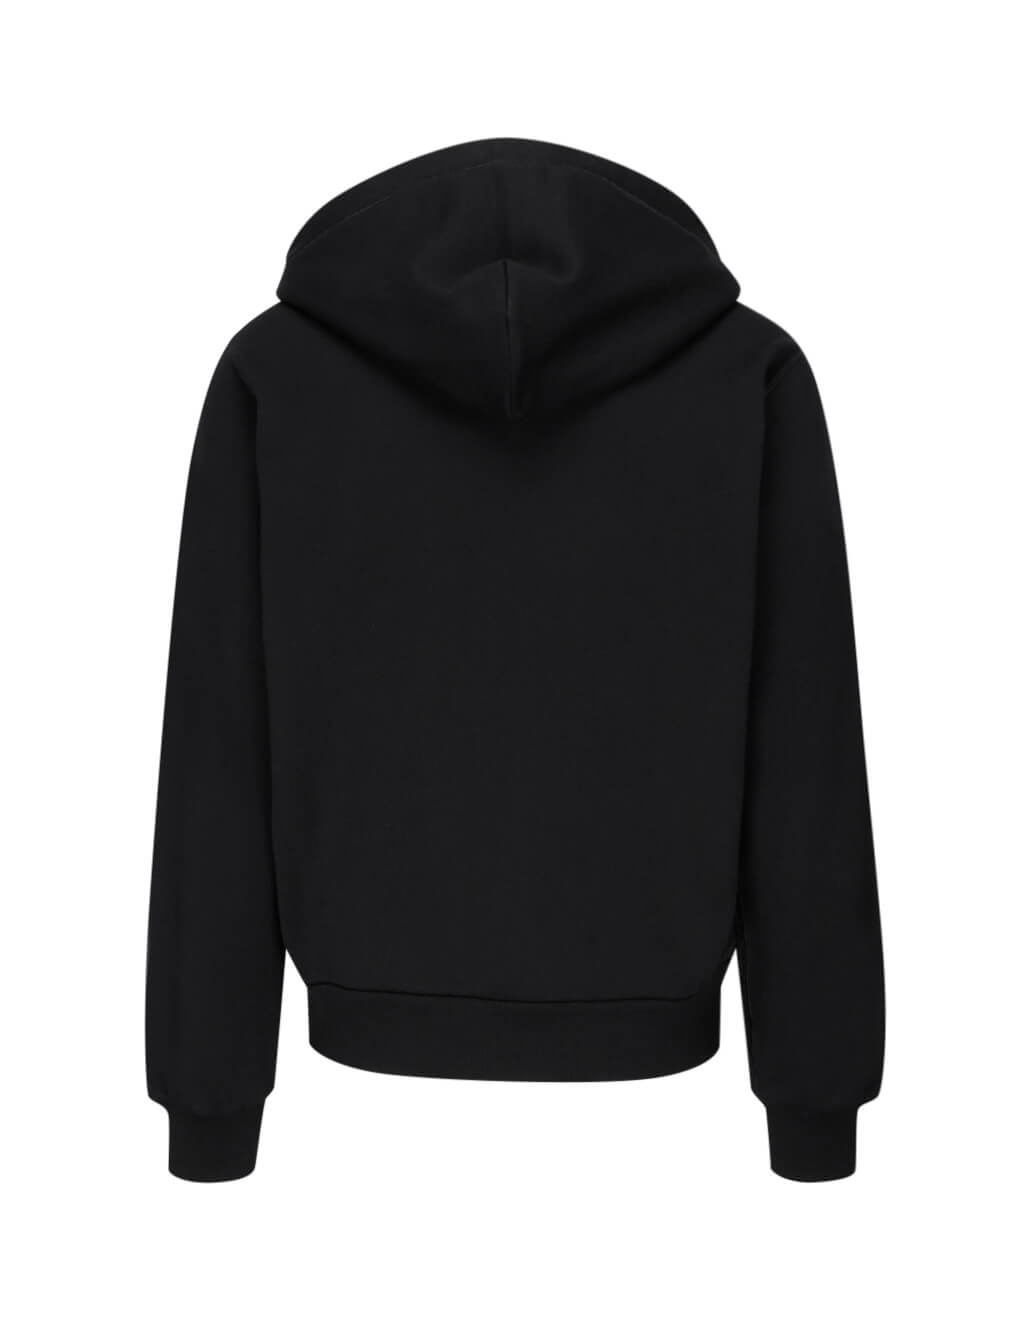 Dolce&Gabbana Men's Black Cotton Zip-Up Hoodie G9PD2TFU7DUN0000